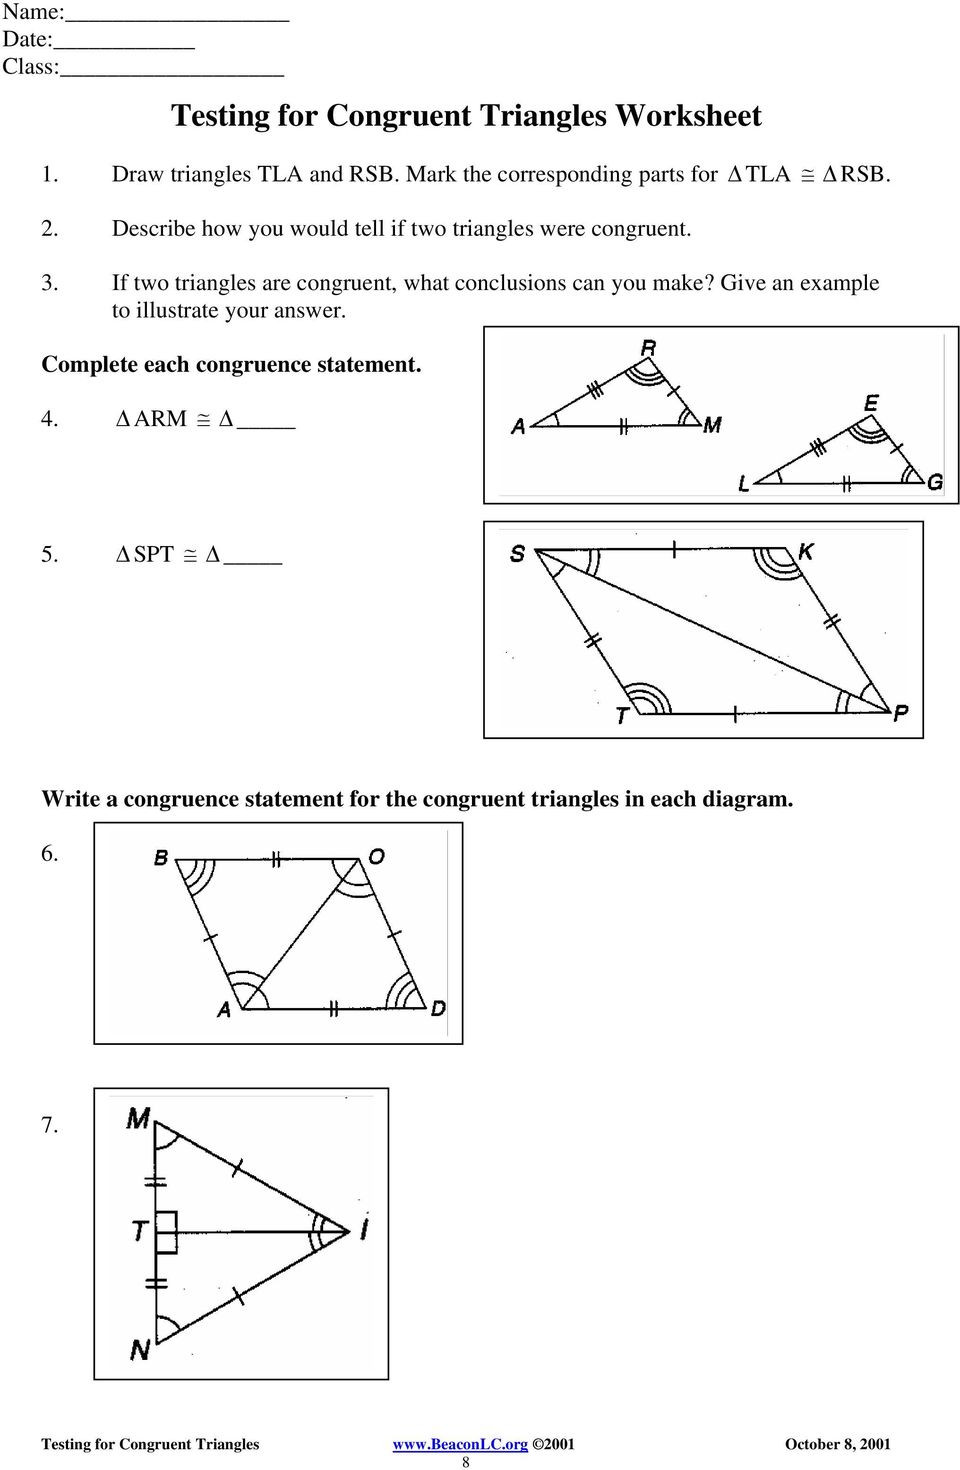 Congruent Triangles Worksheet with Answers Testing for Congruent Triangles Examples Pdf Free Download